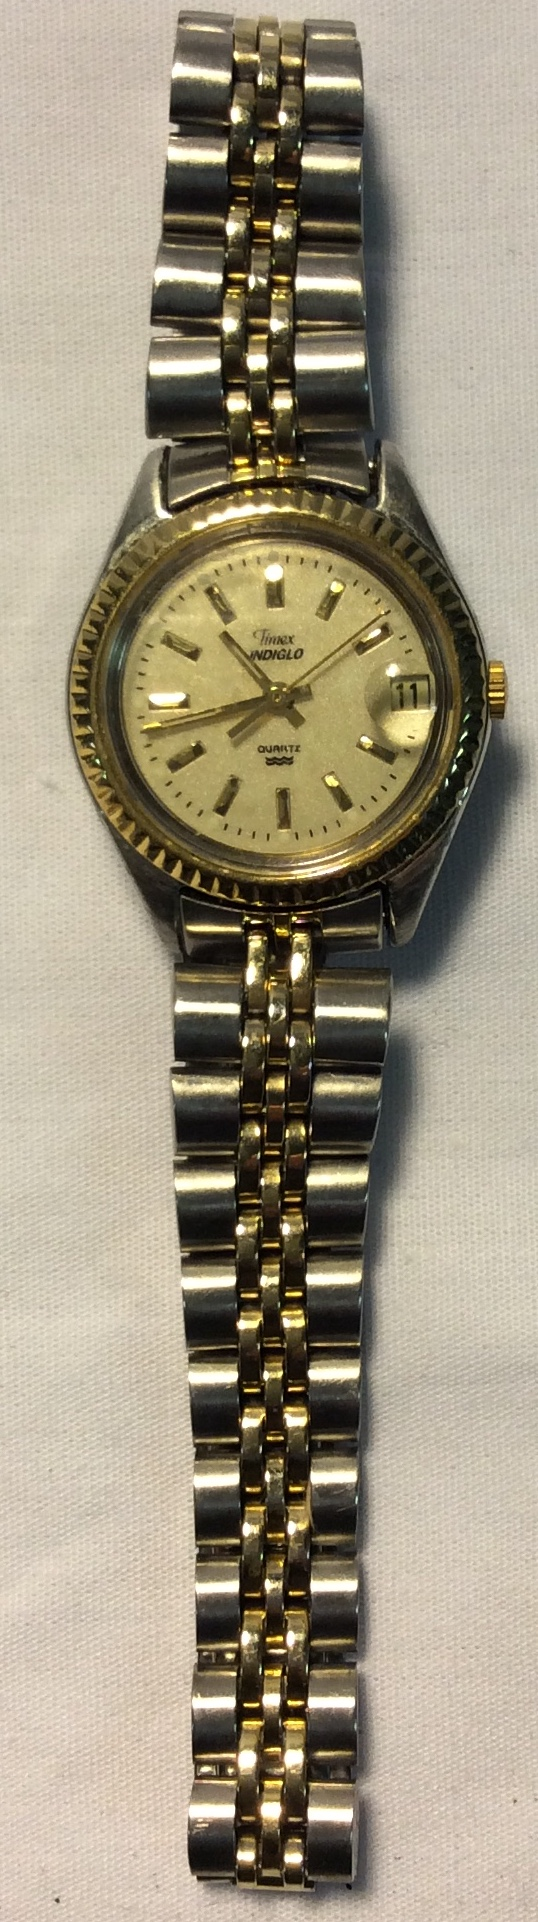 Timex Gold face, thin gold casing